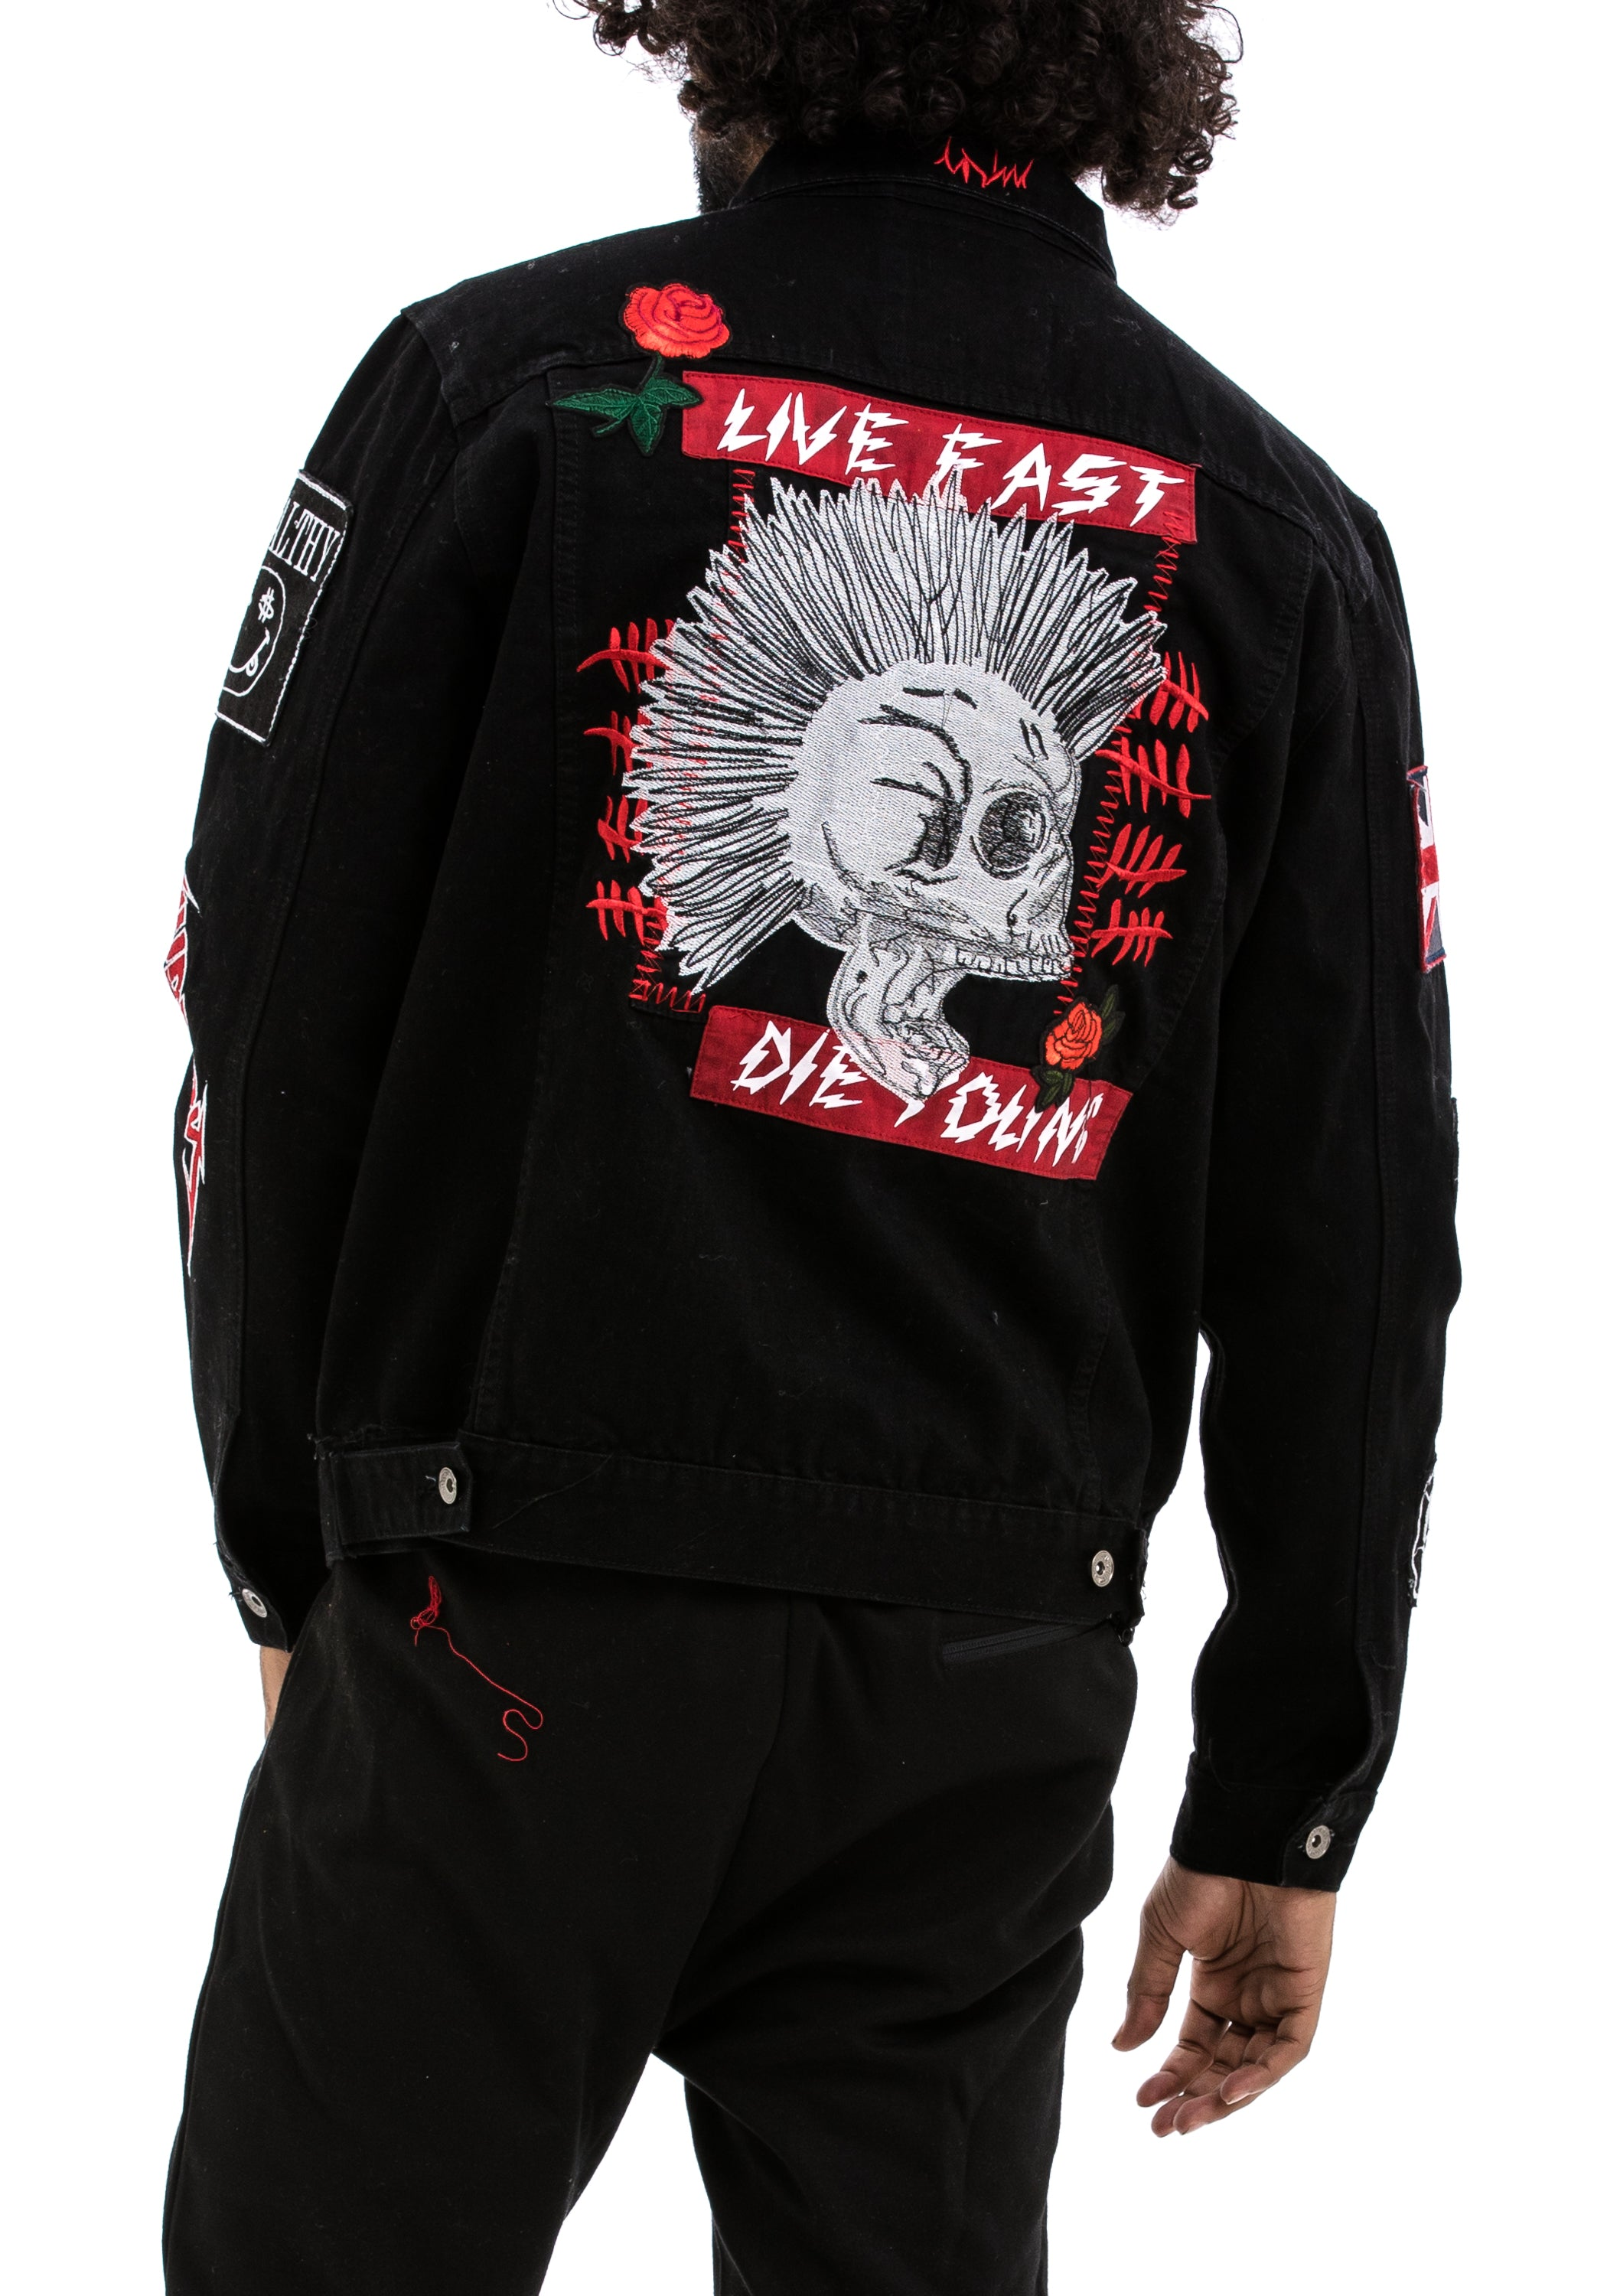 Very Live Fast Die Young Denim Jacket | Hudson Outerwear DG03